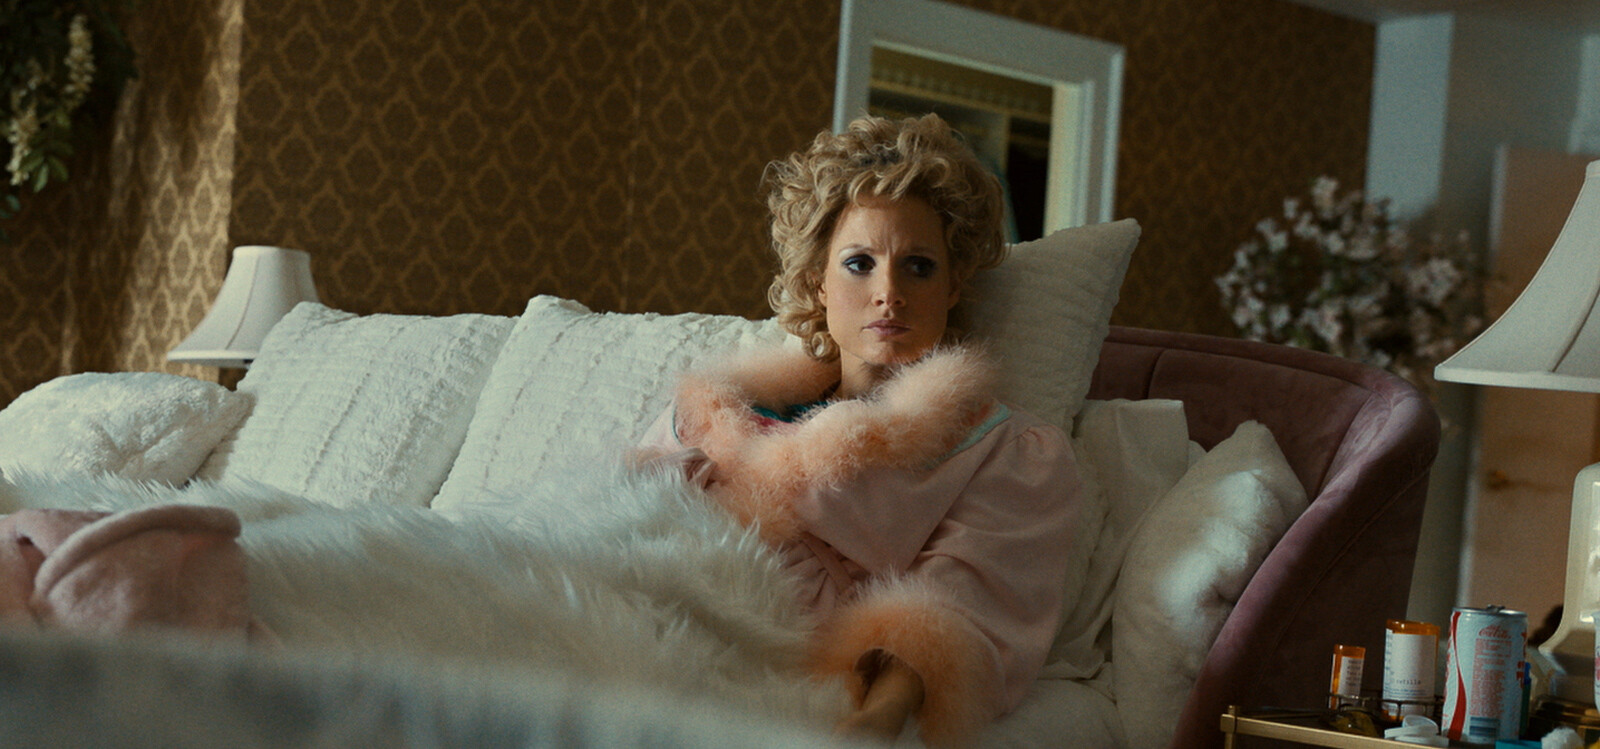 'The Eyes of Tammy Faye' isn't as good as Jessica Chastain's performance